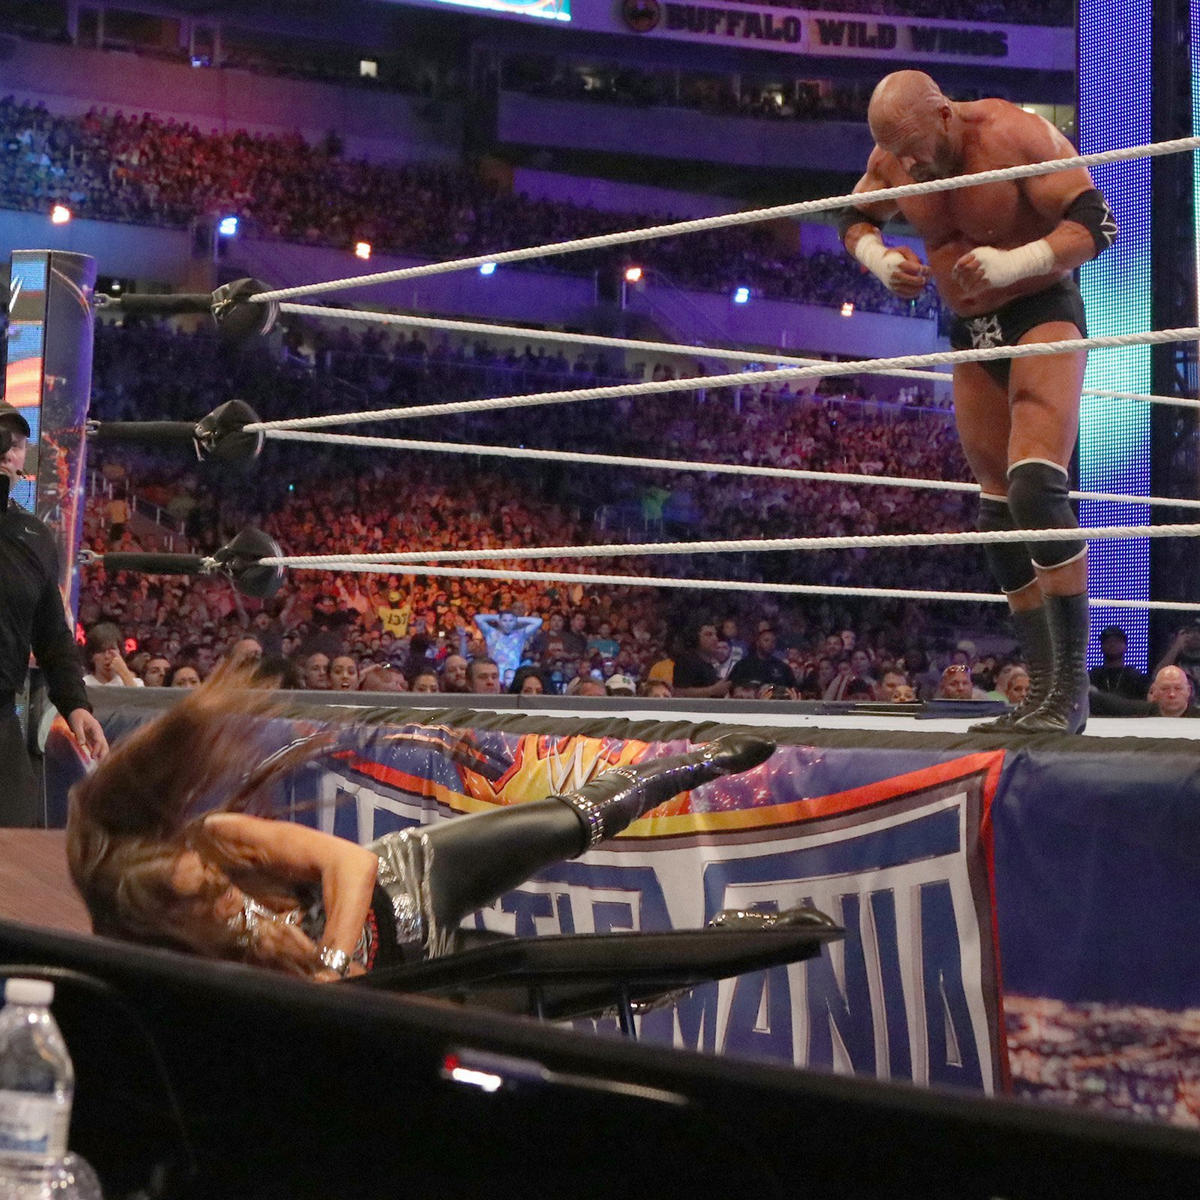 Triple H inadvertently collides with Stephanie, sending her crashing through a table.